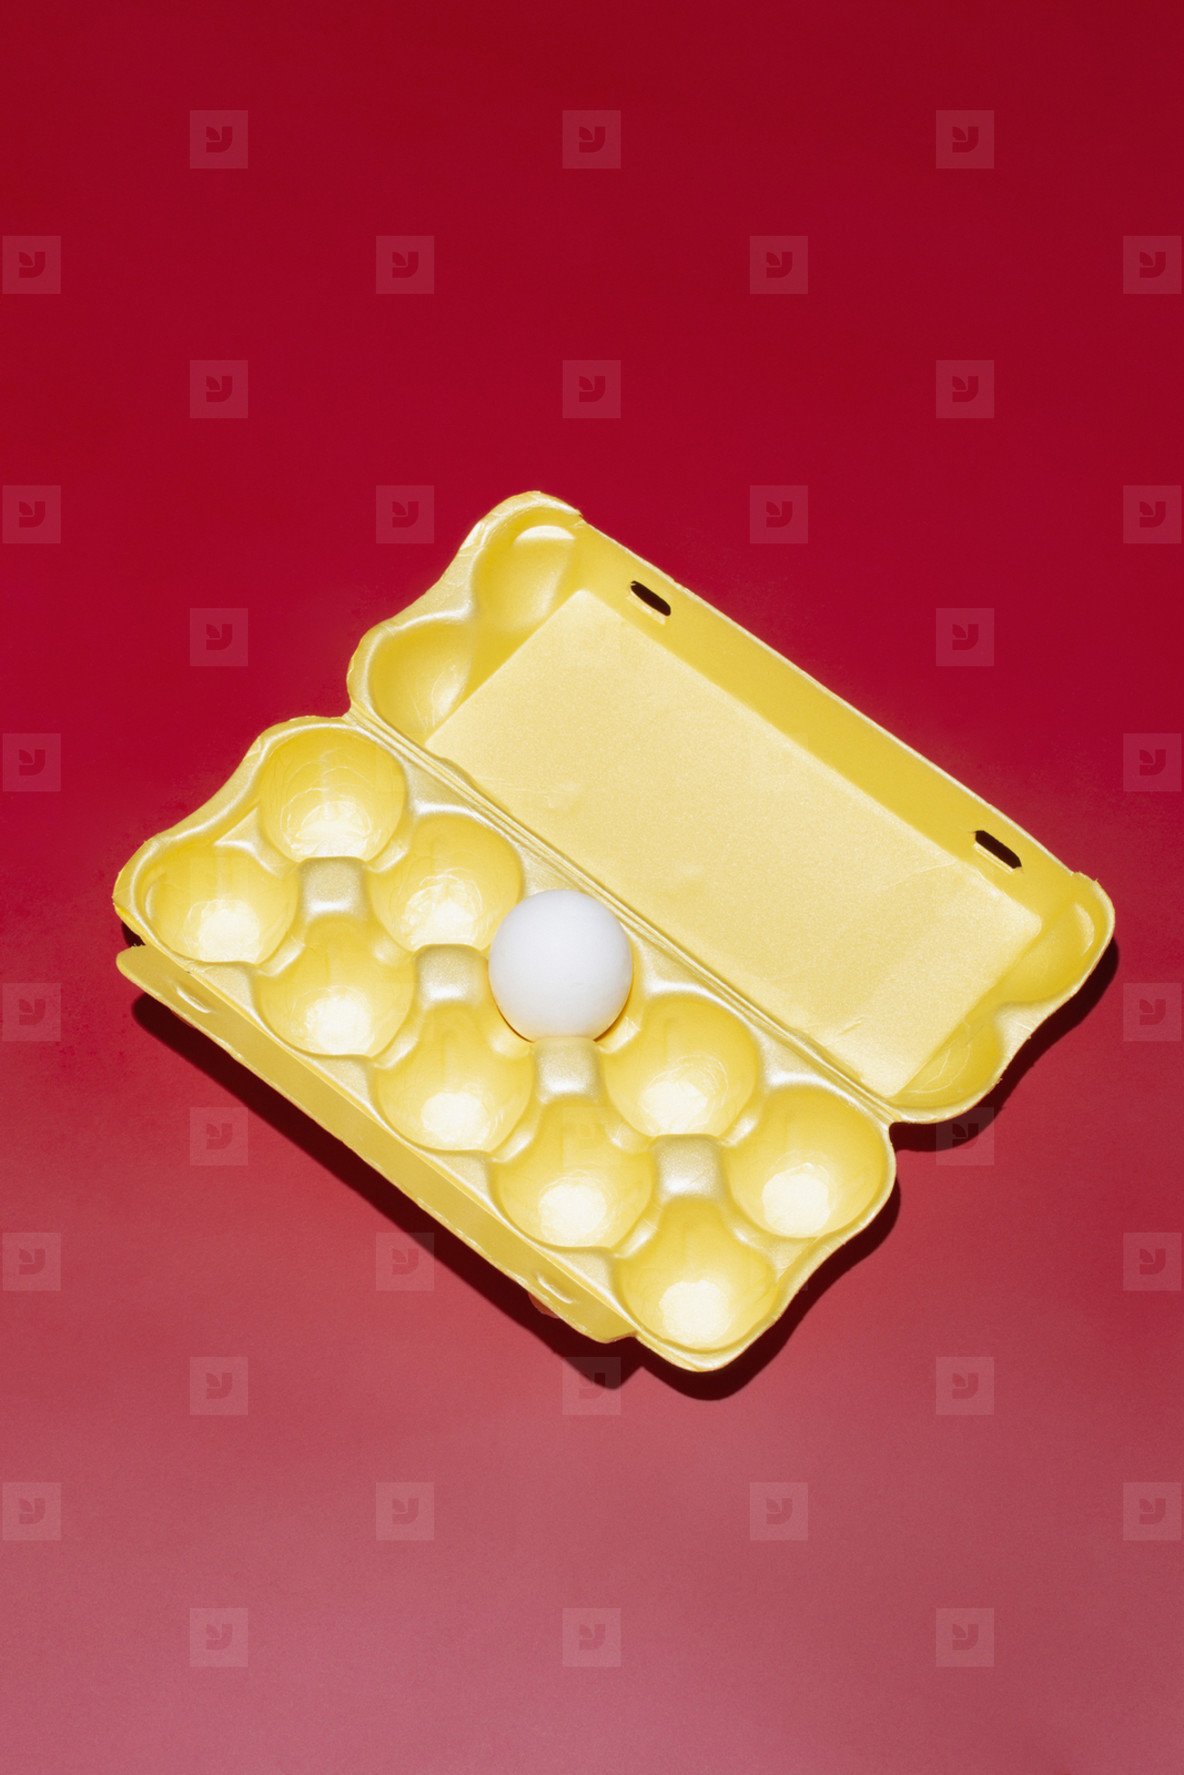 Single egg in polystyrene carton on red background